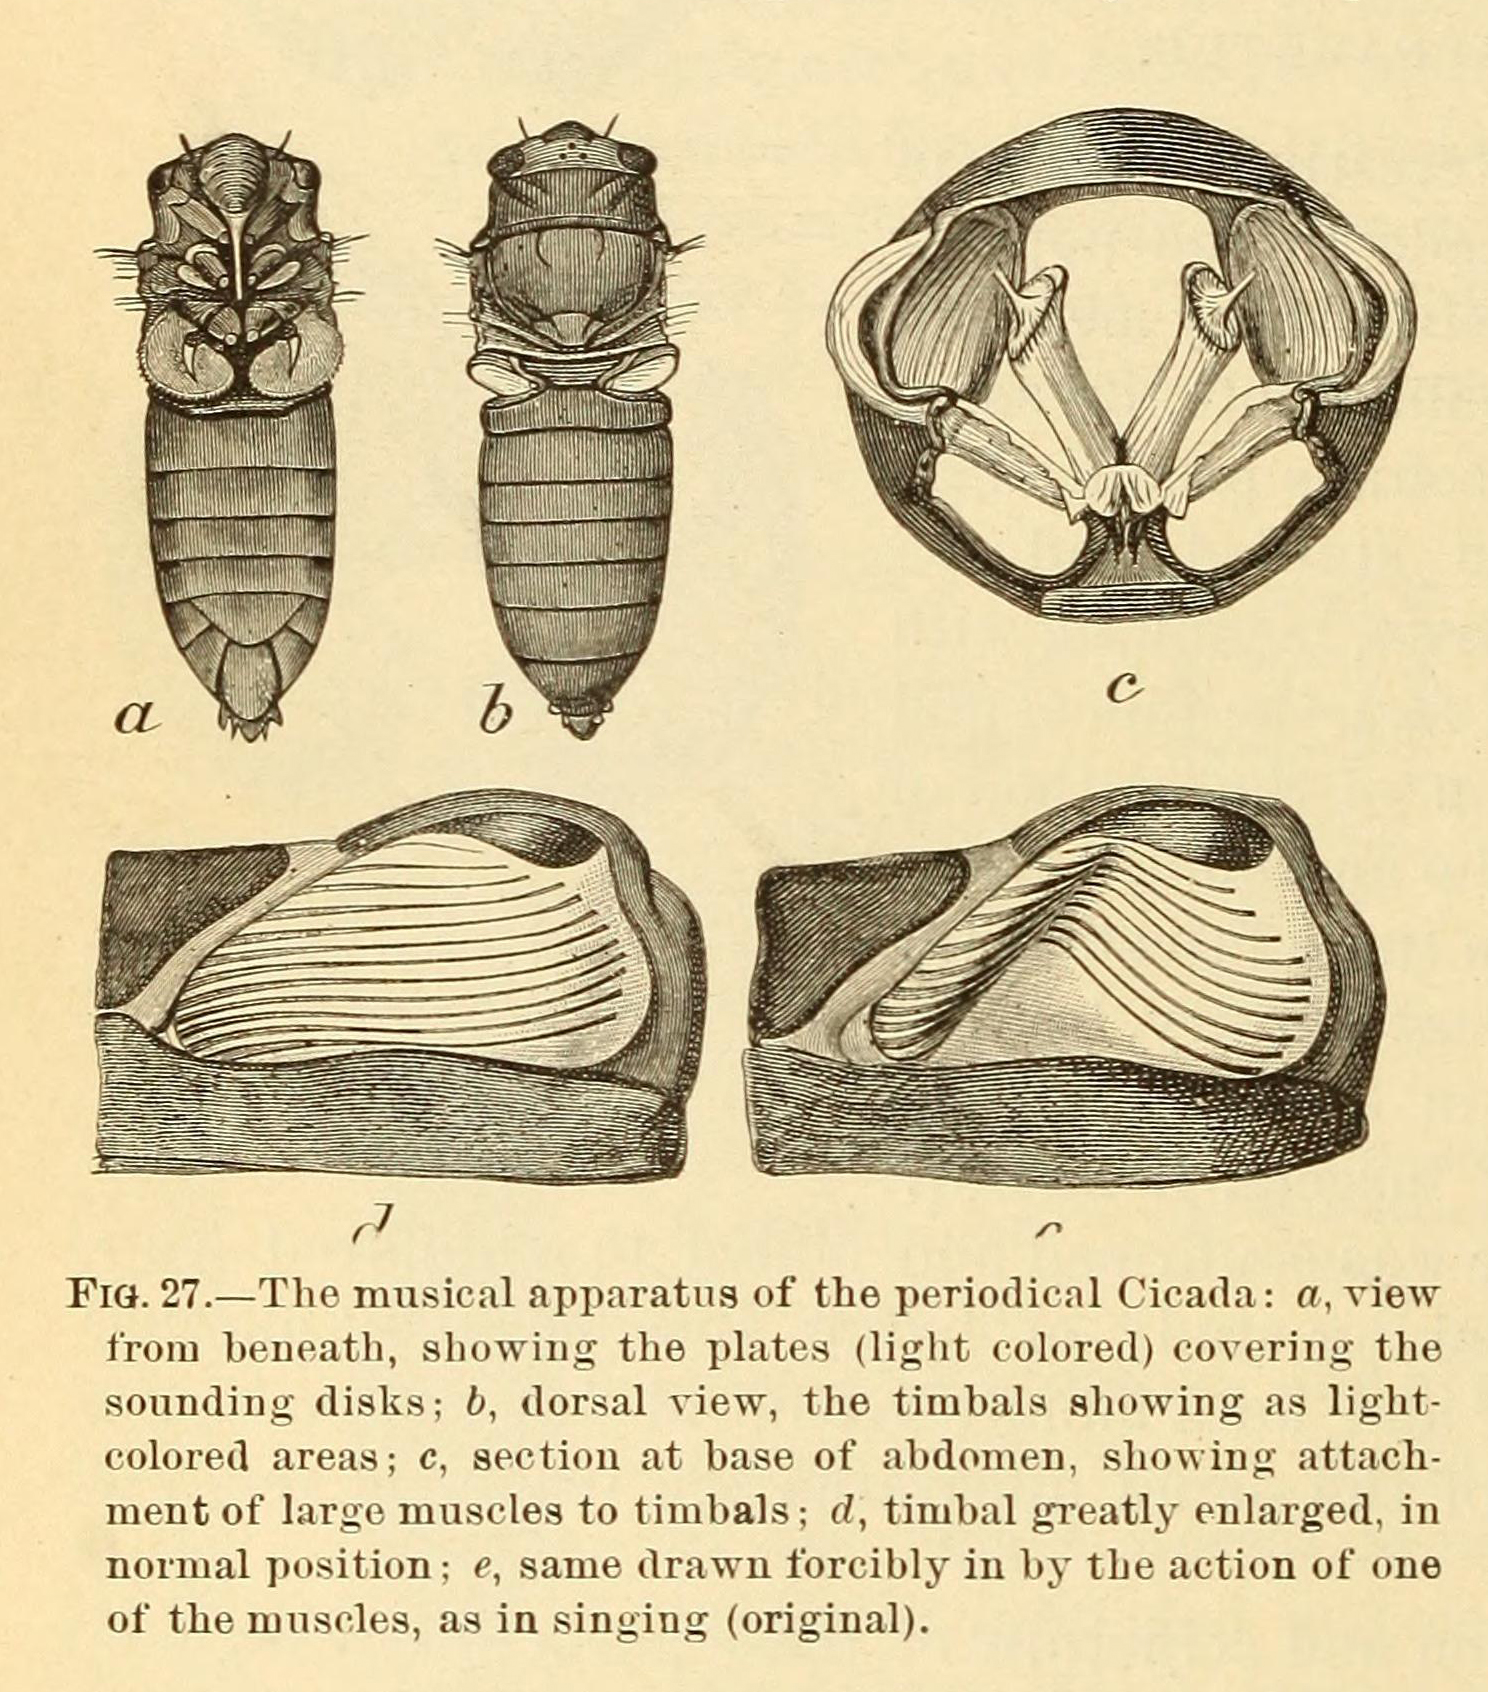 Black and white drawing of the musical apparatus of a cicada.